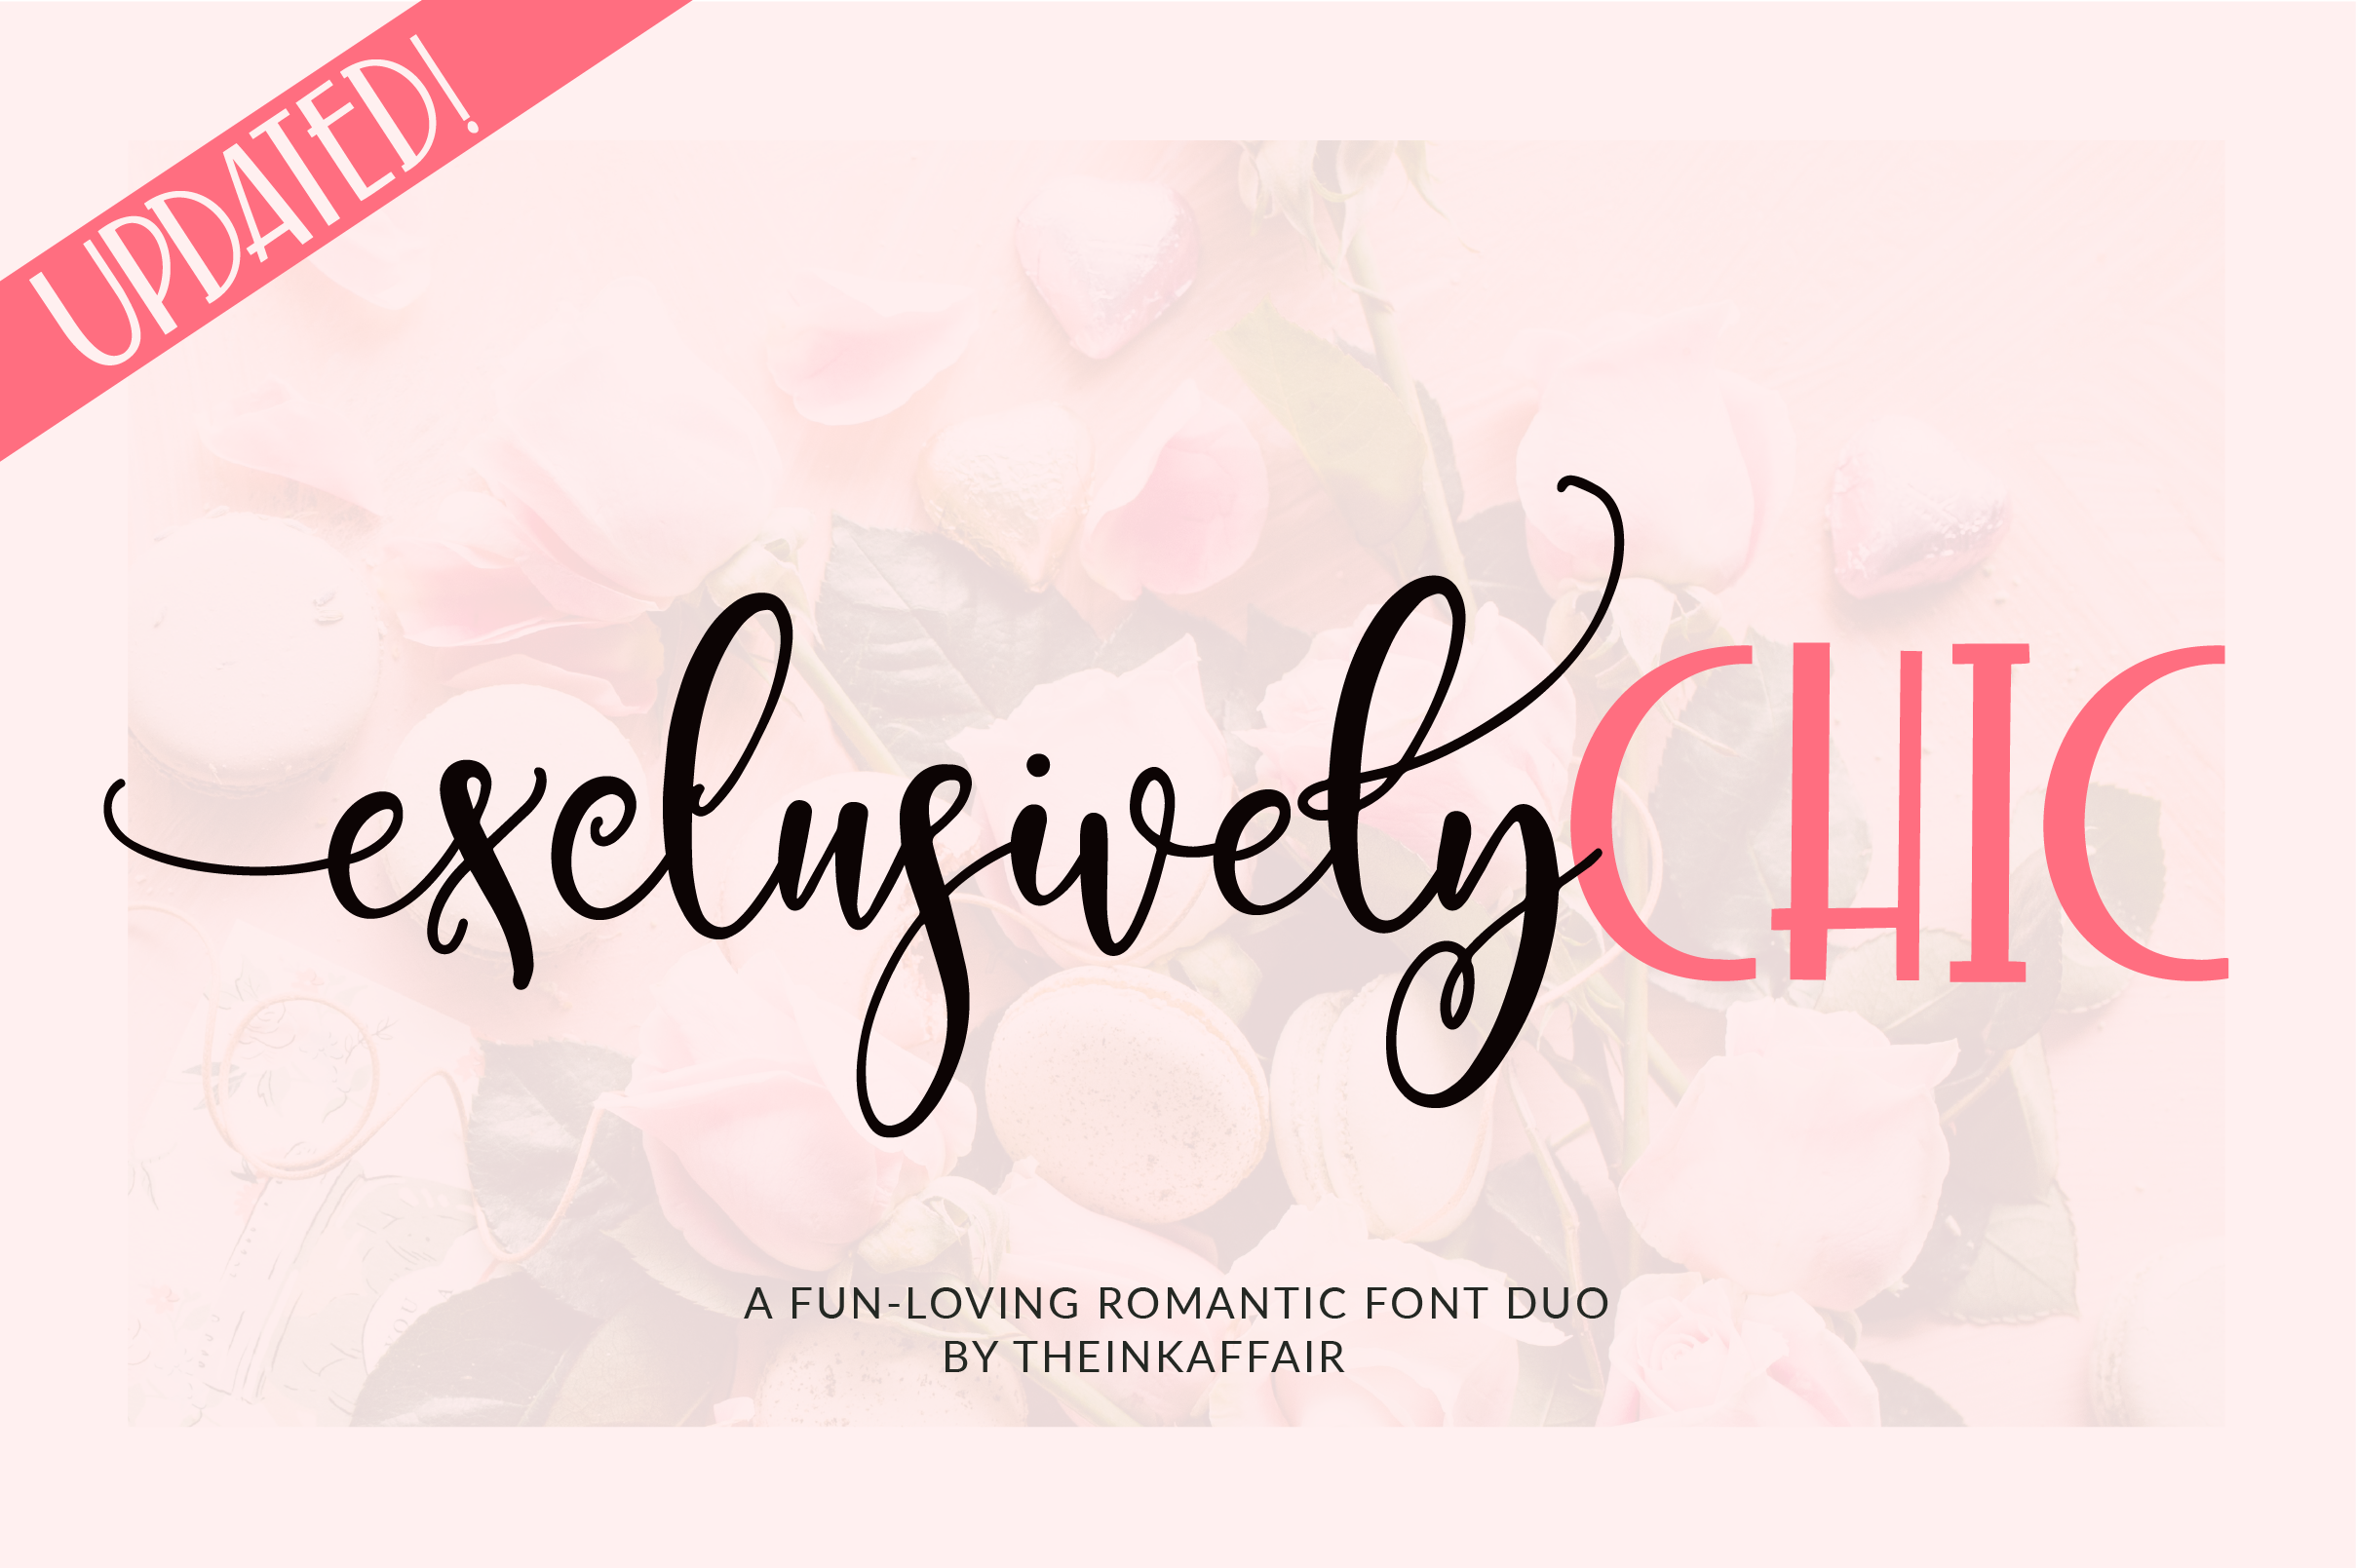 Exclusively Chic Font Duo example image 1